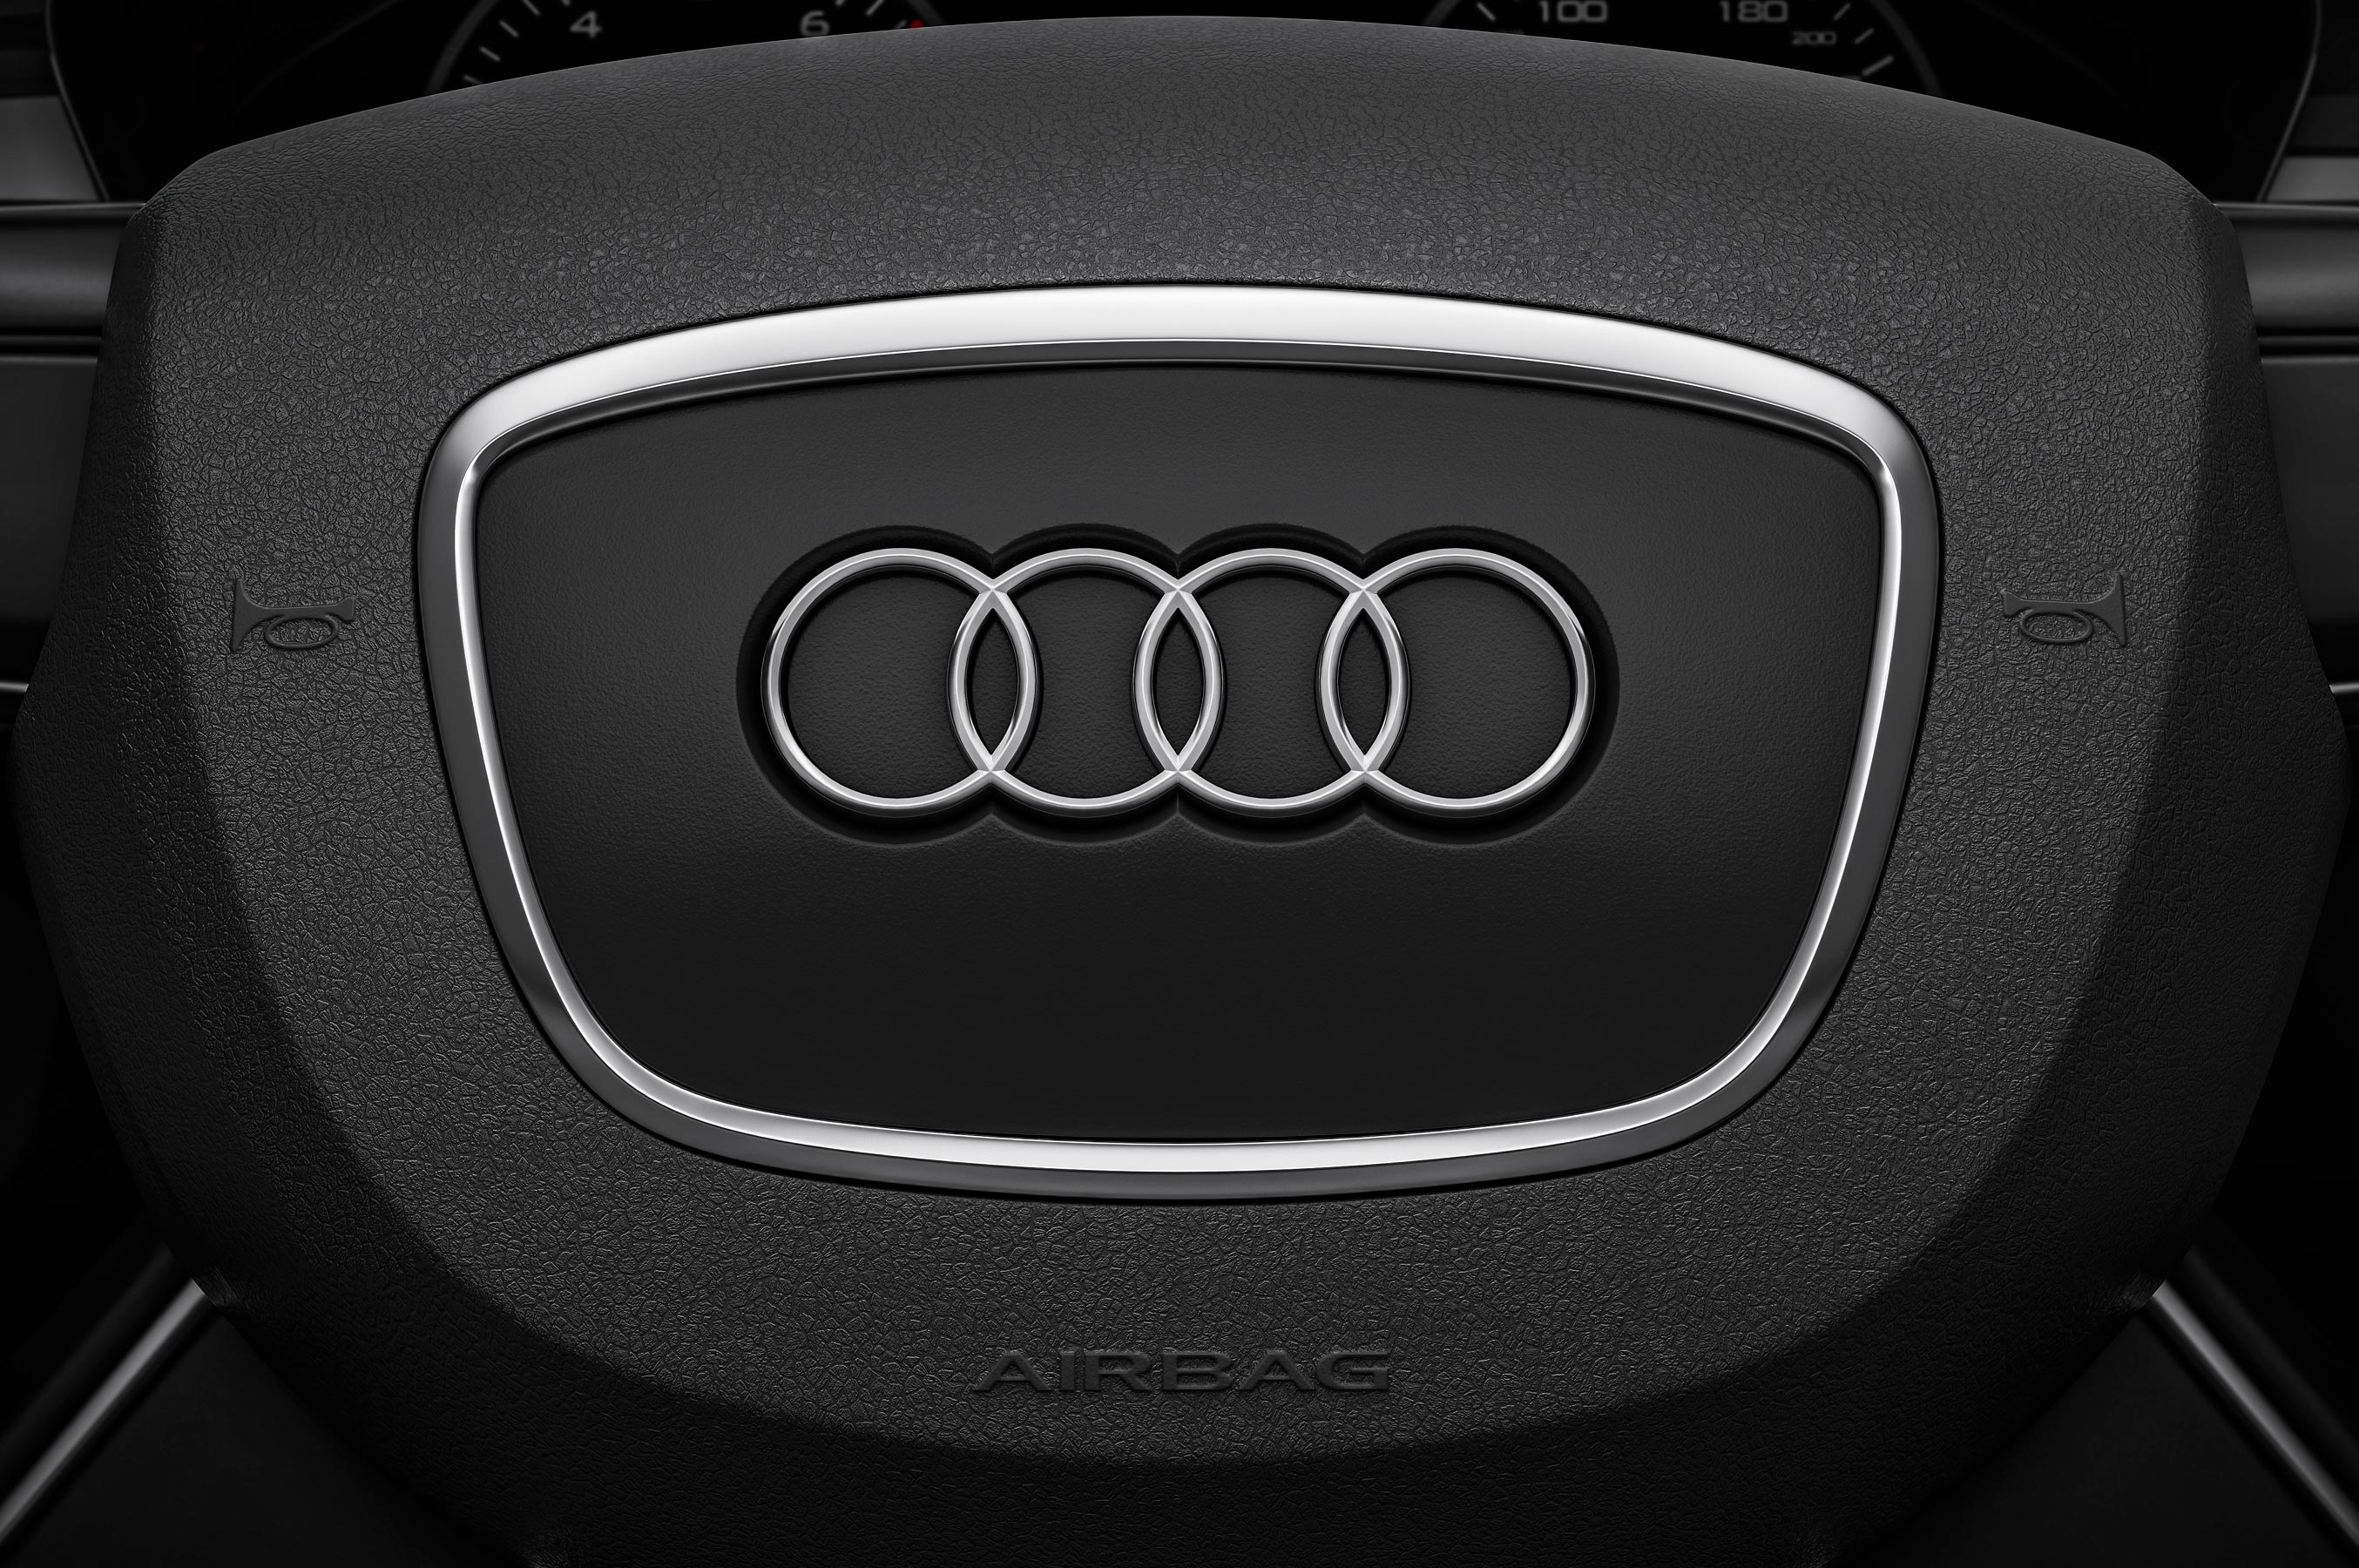 audi_cgi_interior_tank_london_04